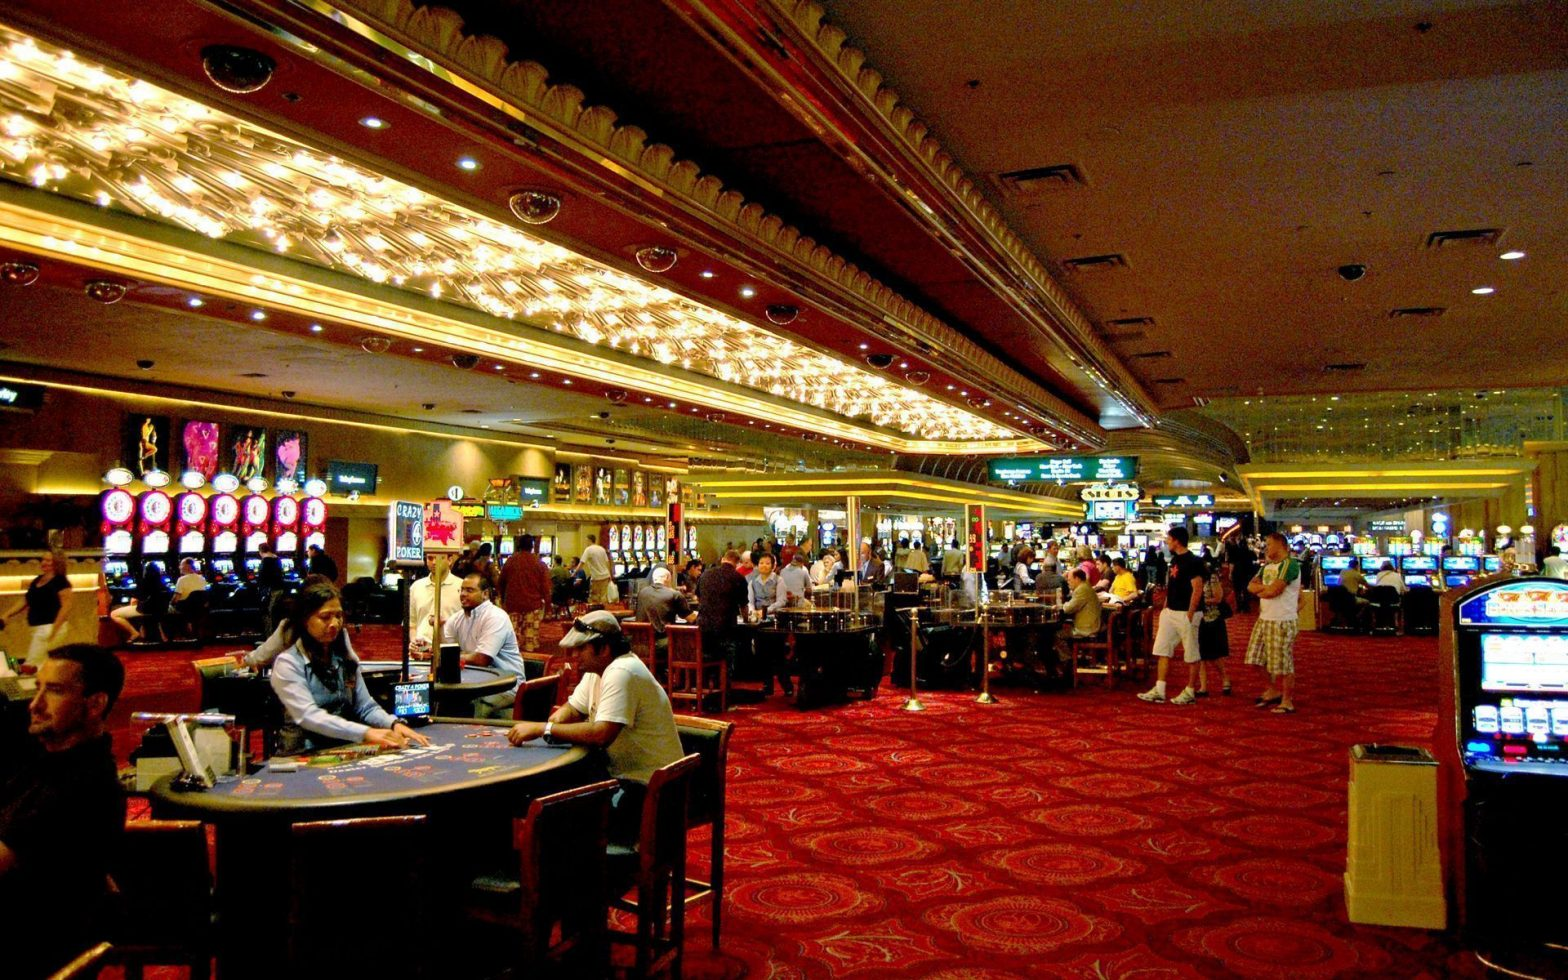 The Market Is Concerned with Online Gambling